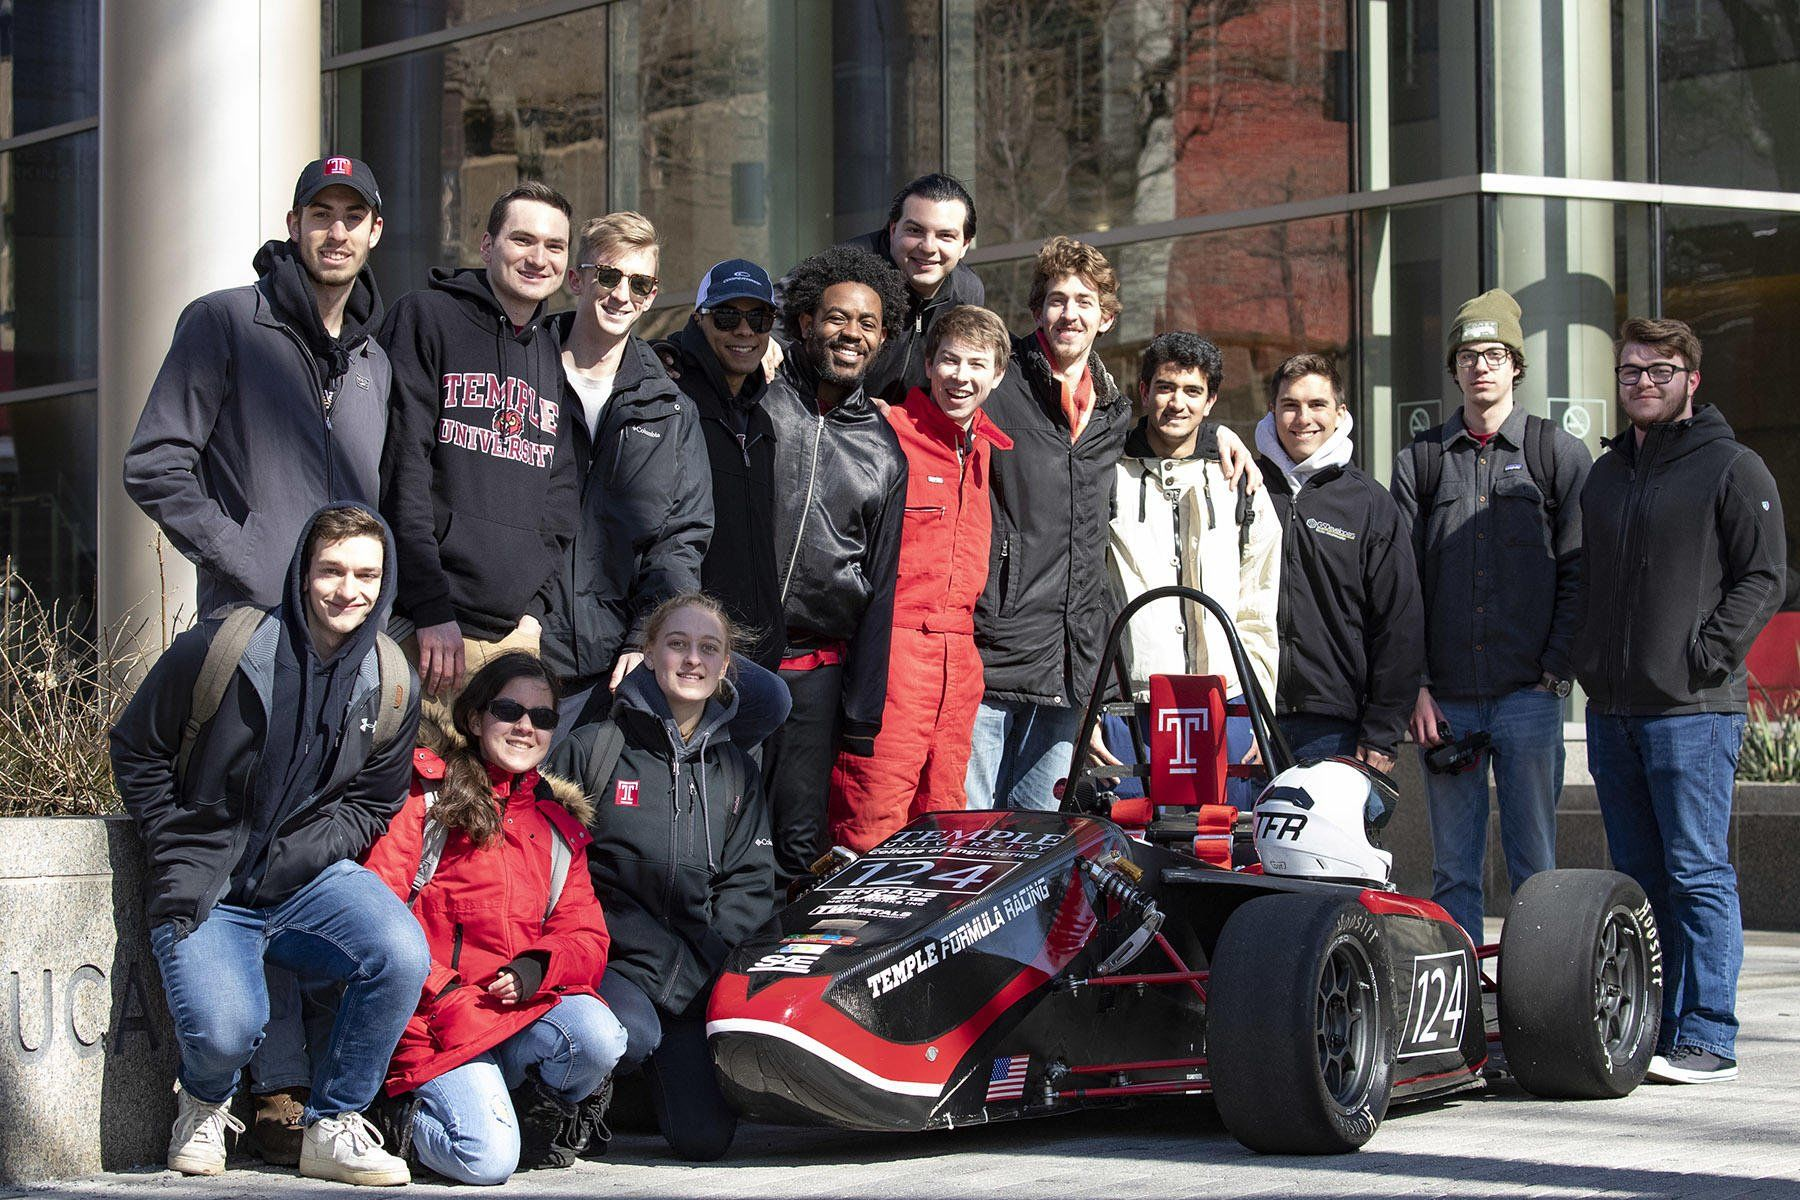 The 2019 Temple Formula Racing Team pose in front of their car.